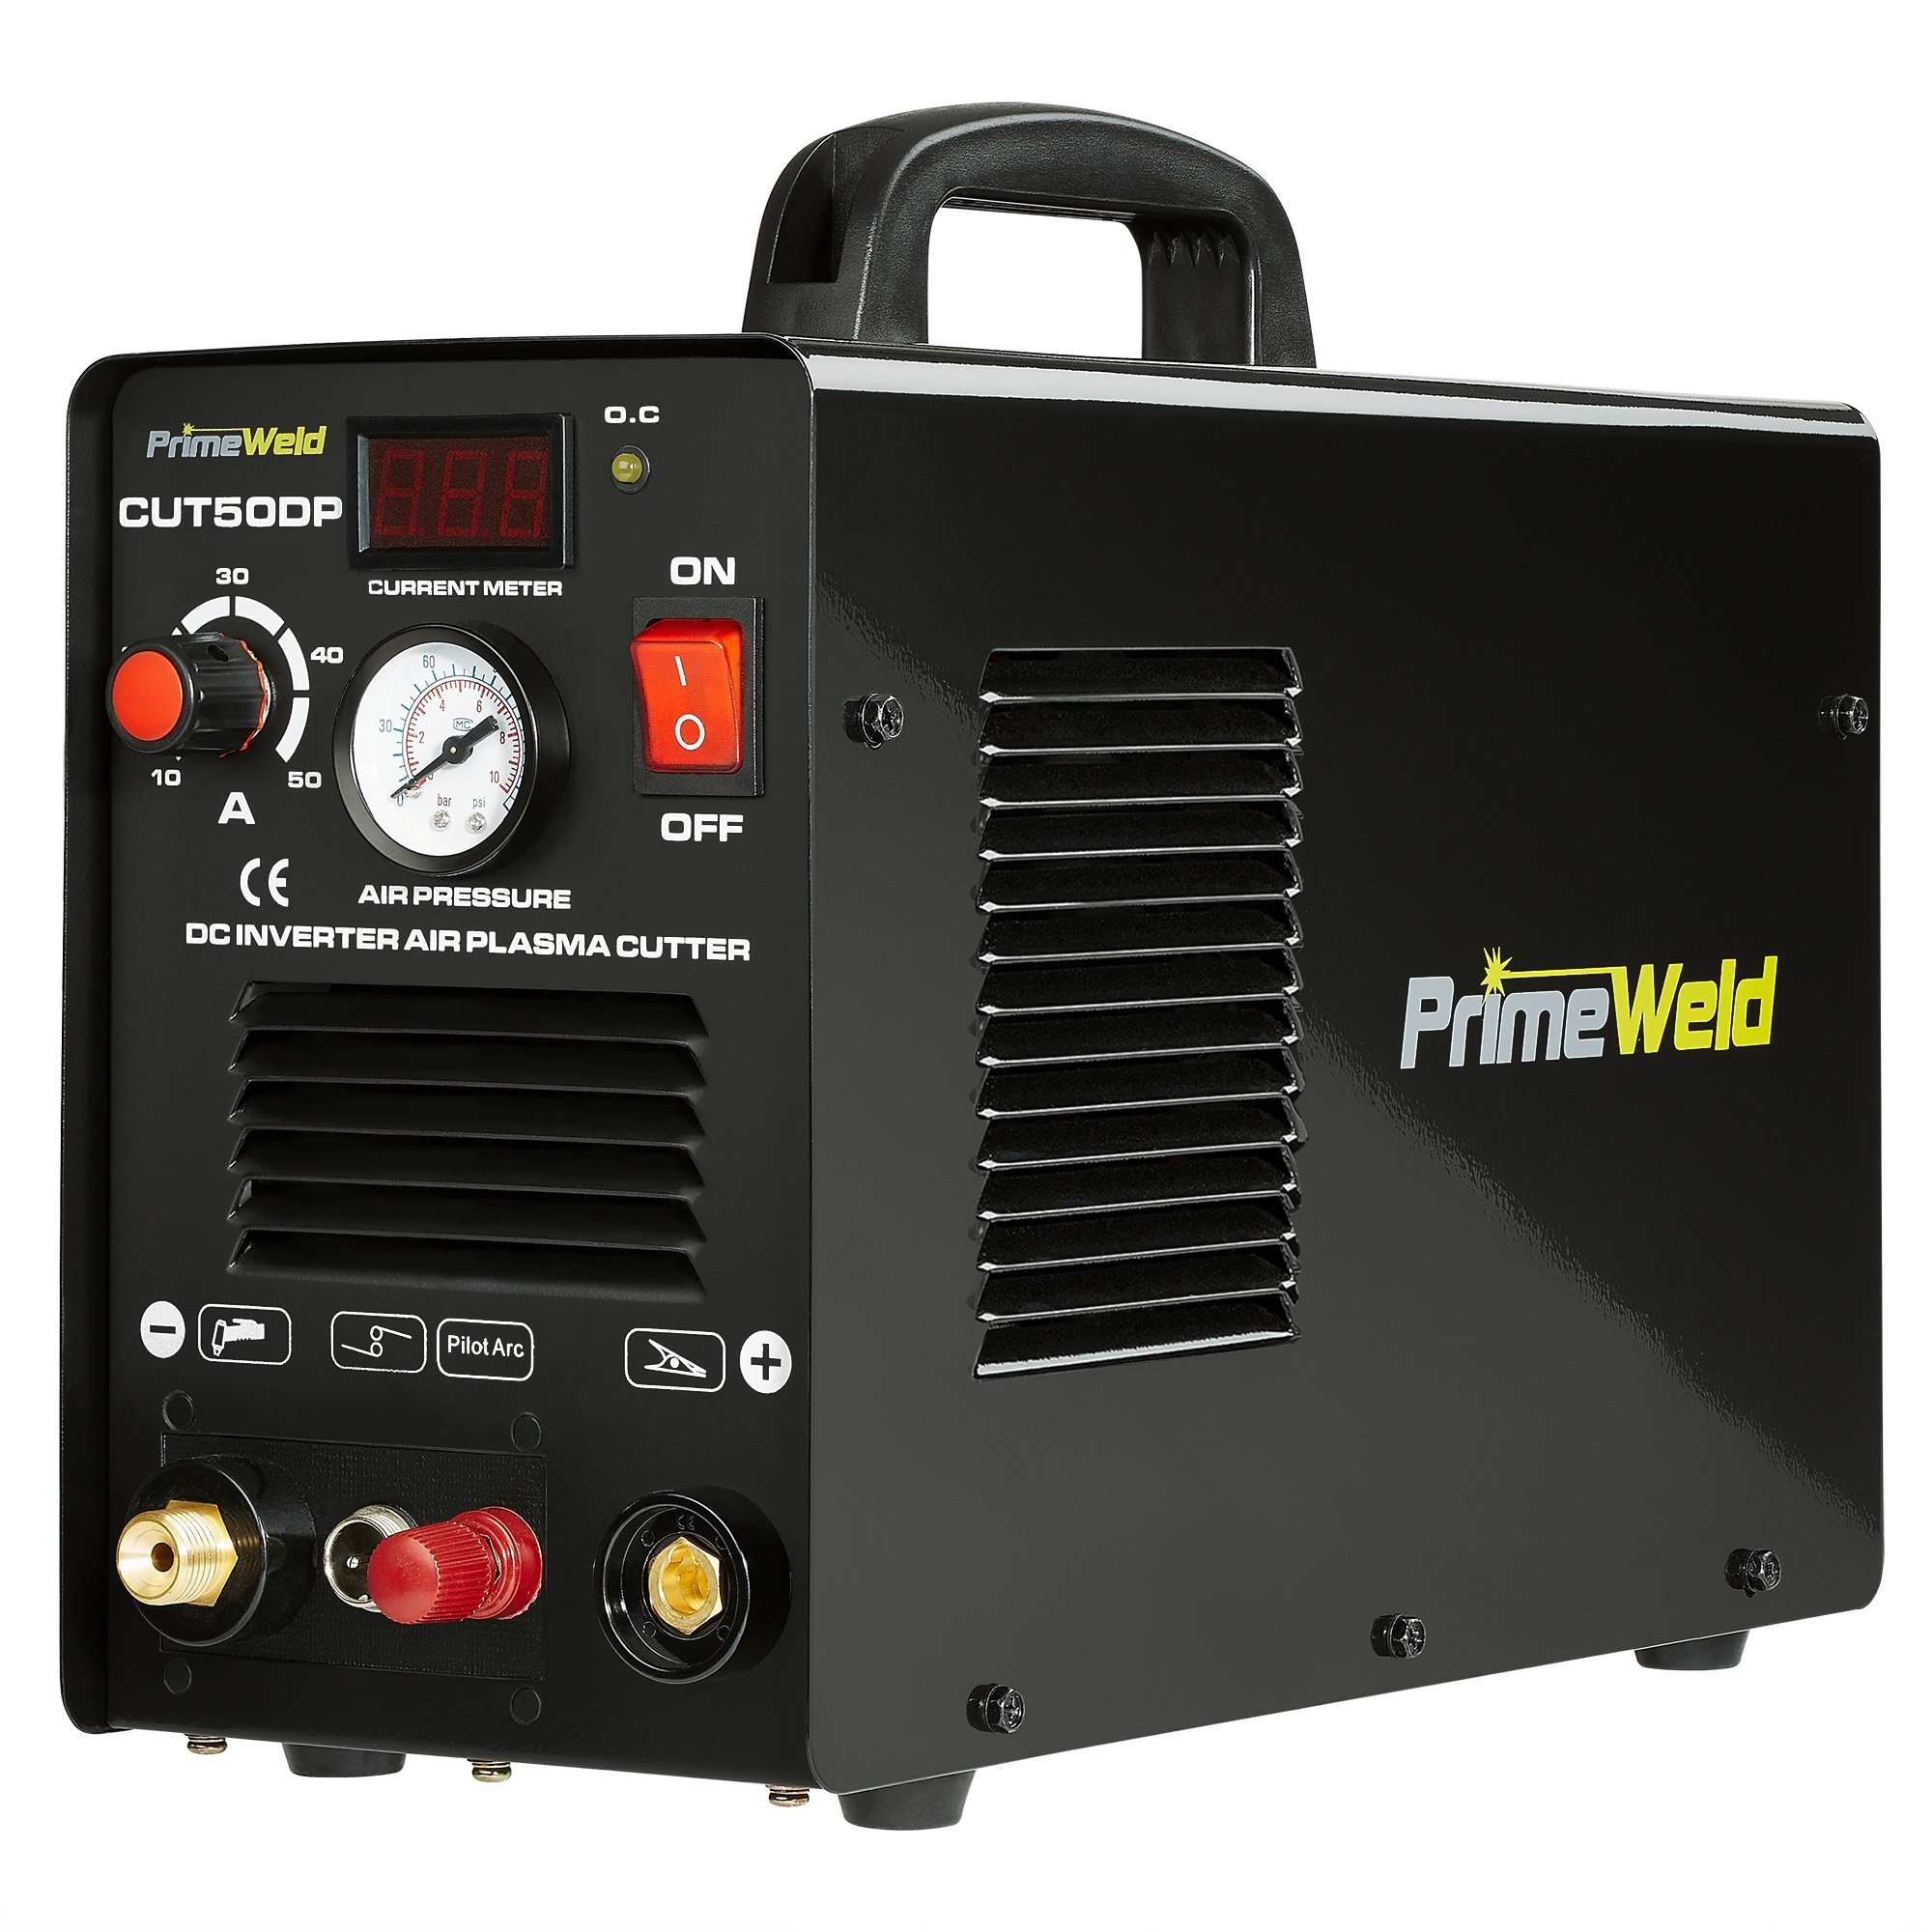 PRIMEWELD 50A CUT50DP NonTouch Pilot Arc Air Inverter Plasma Cutter Dual Voltage 110/220VAC 1/2'' Clean Cut ... by PRIMEWELD